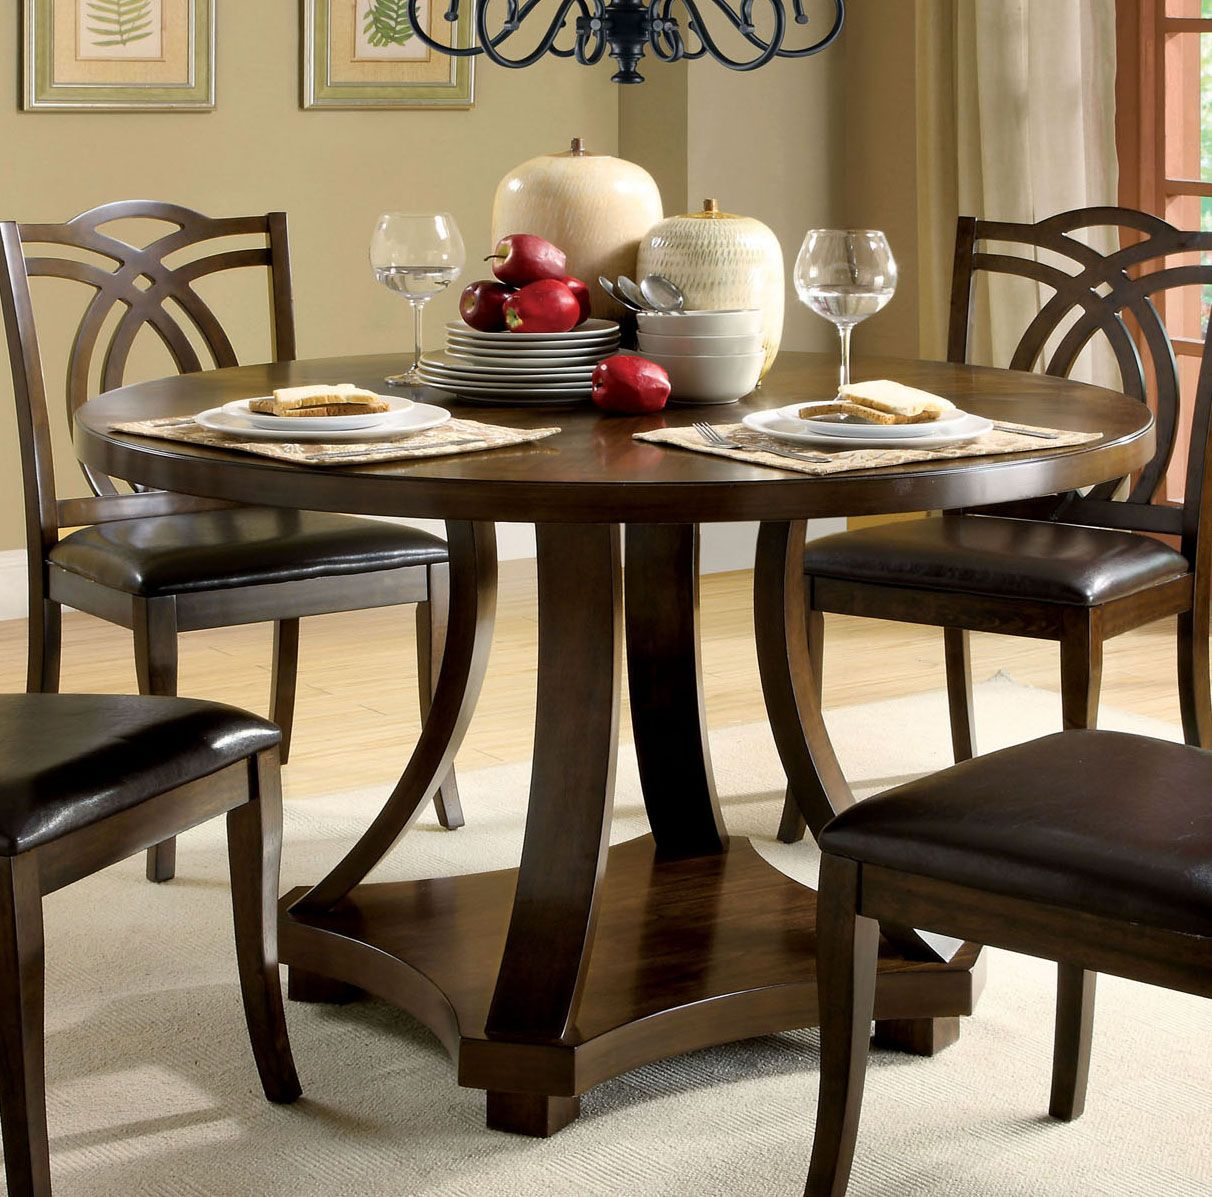 Transitional Round Dining Table, Dark Walnut Brown